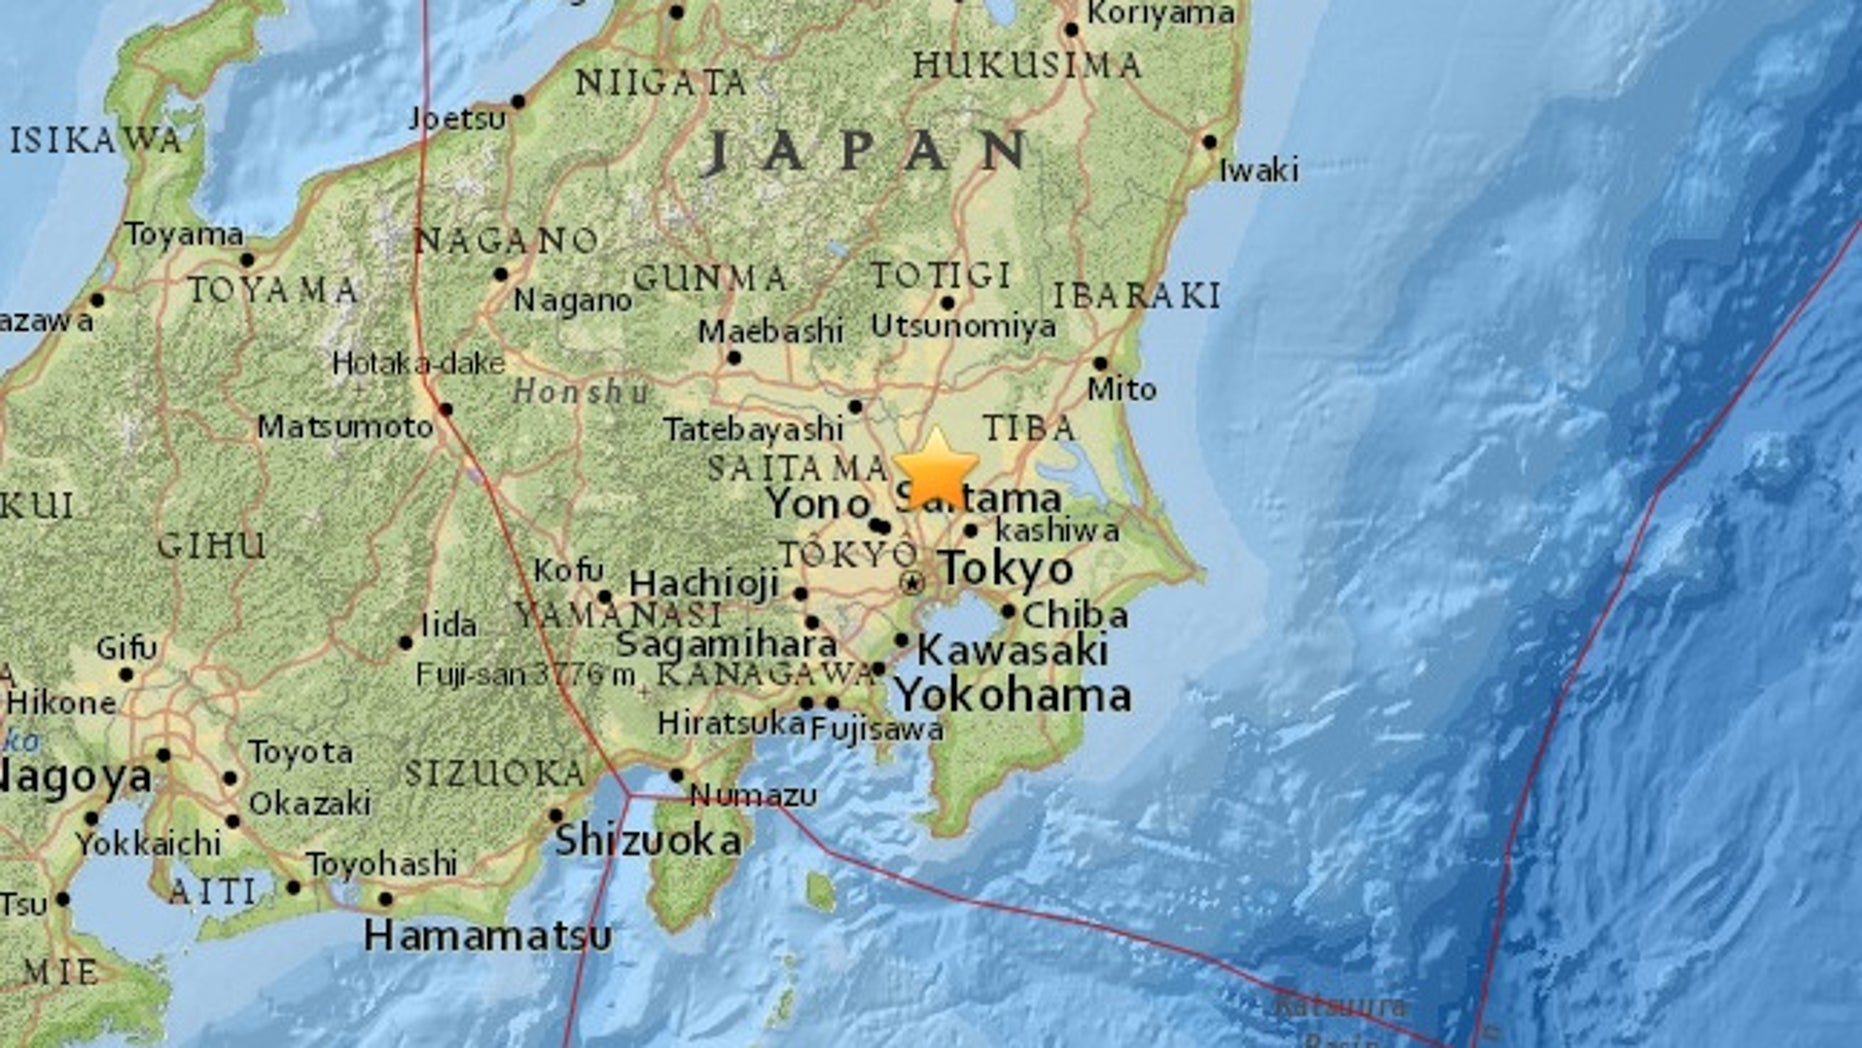 The quake was centered nearly 60 miles northeast of Tokyo.